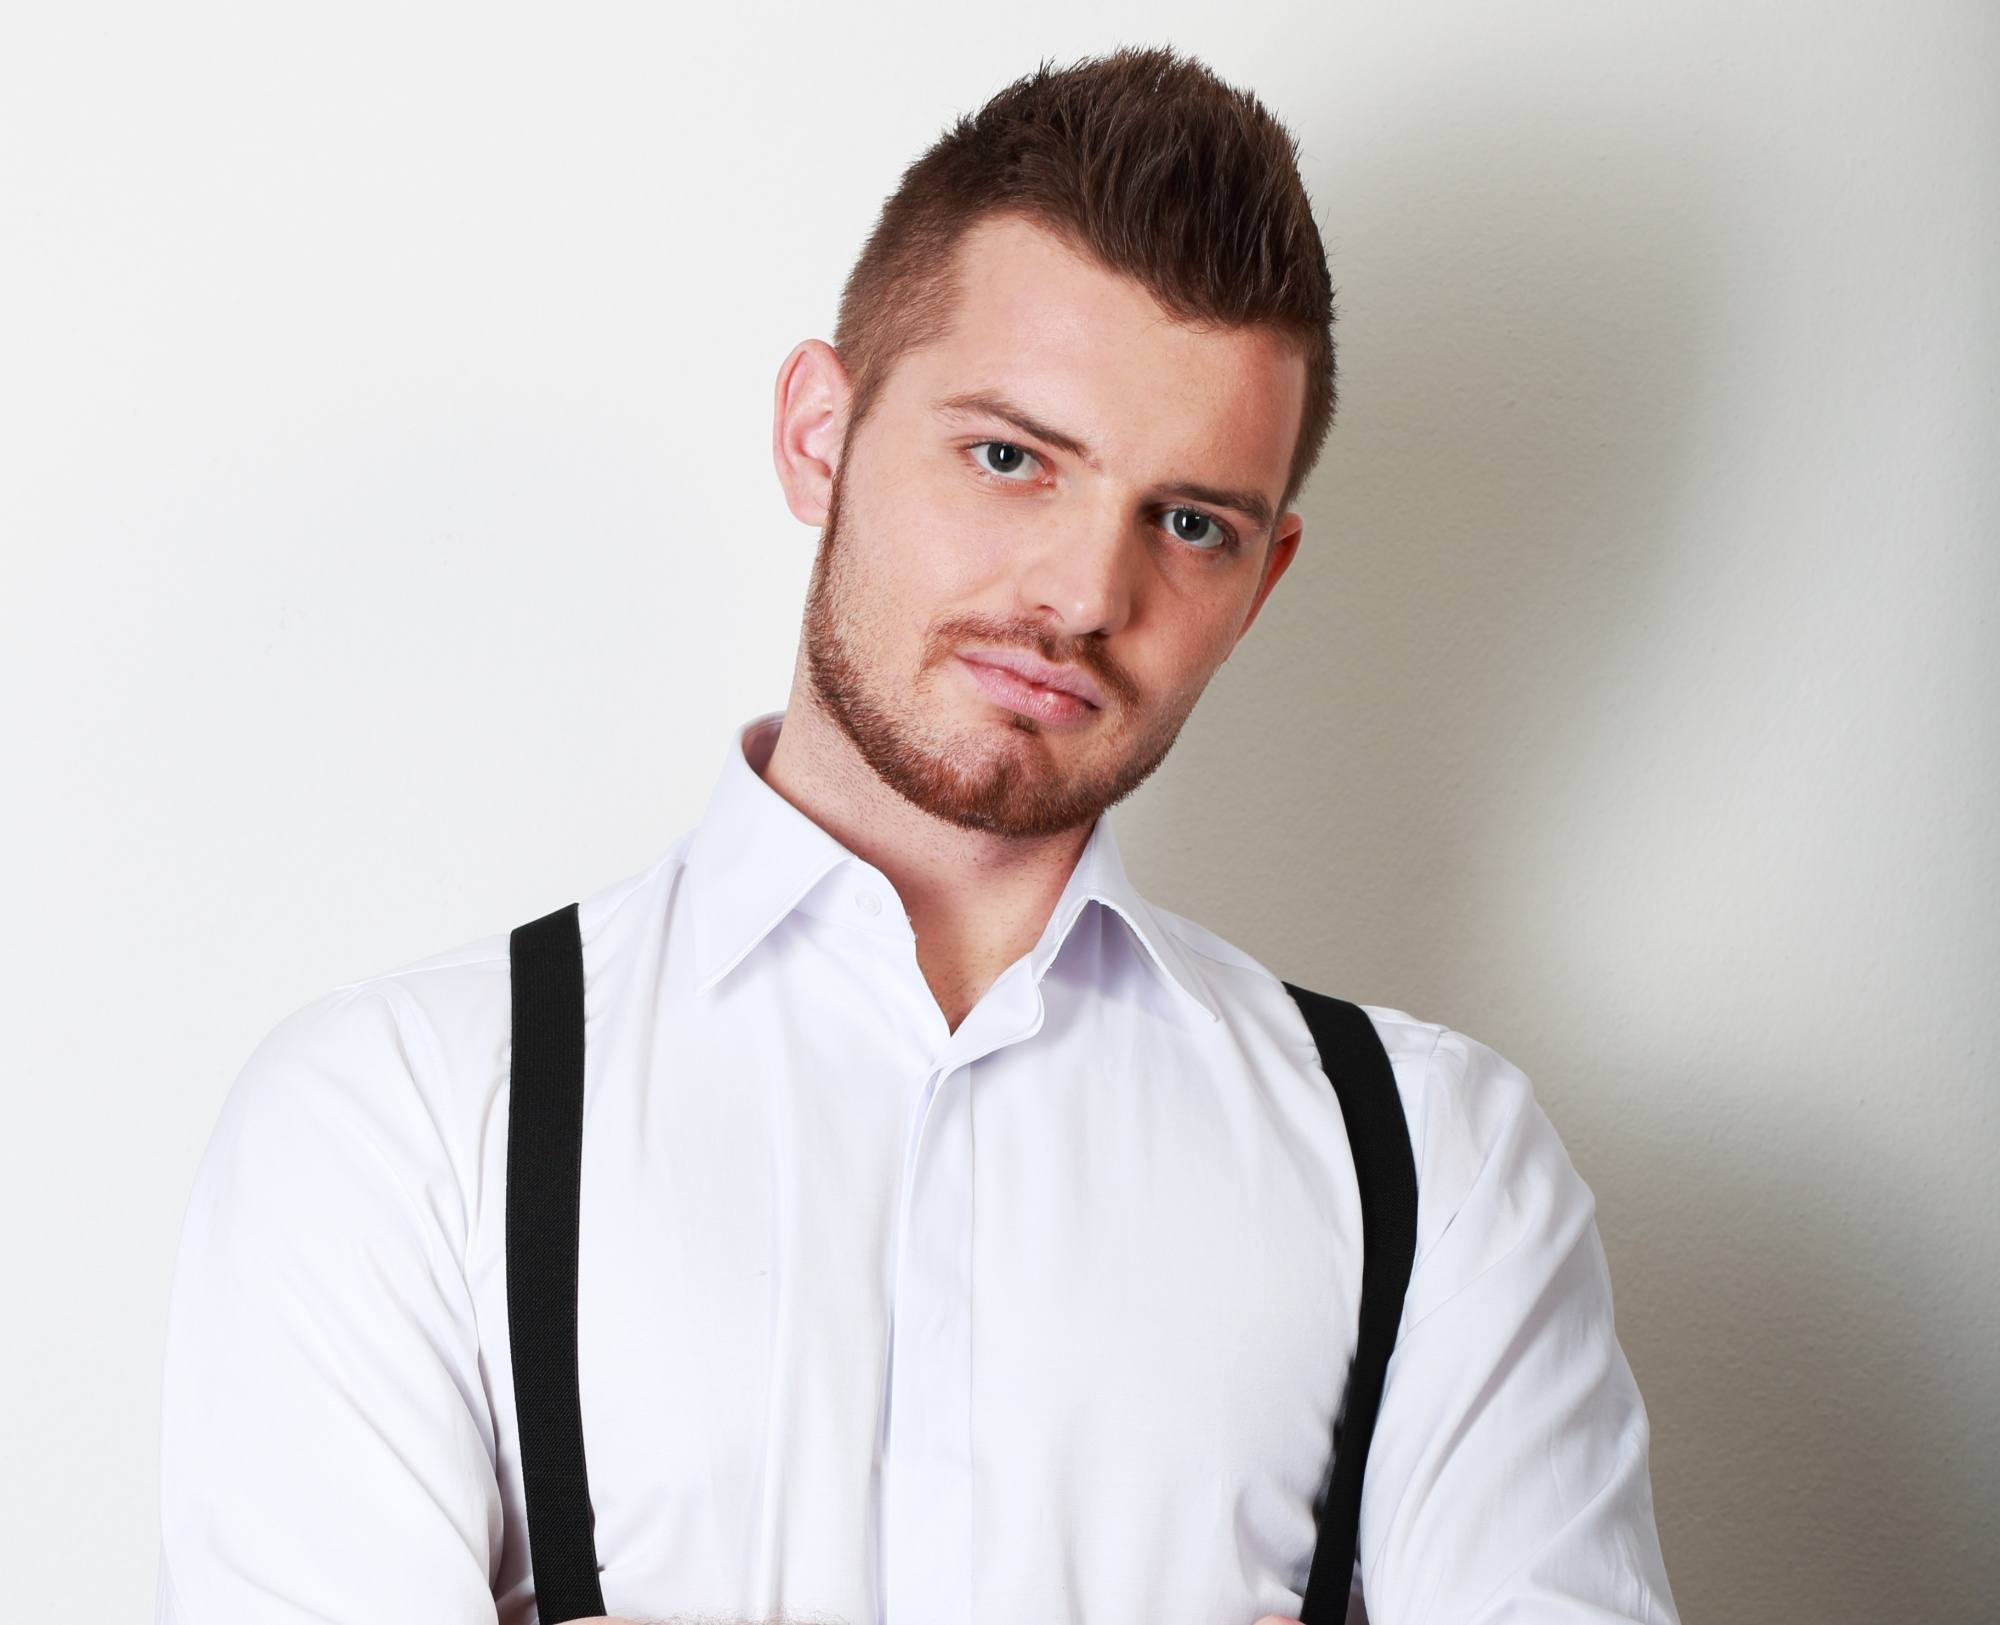 Pinoy haircut: Man with short dark hair wearing a white dress shirt and suspenders